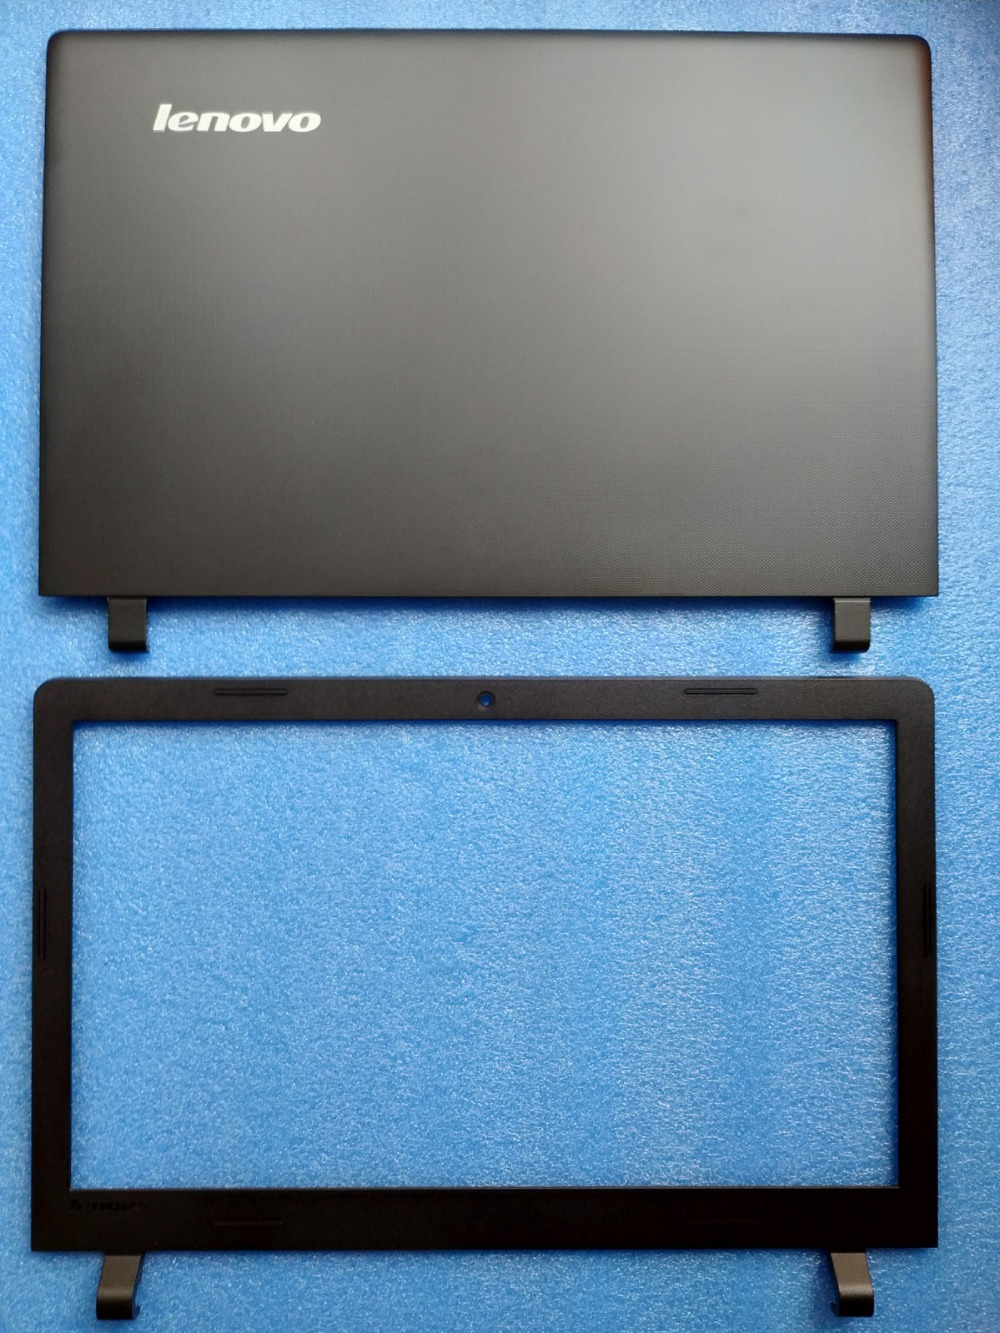 New Original for Lenovo Ideapad 100-15 100-15IBY LCD Back Rear Lid Cover + Front Bezel Black AP1HG000100 AP1ER000200New Original for Lenovo Ideapad 100-15 100-15IBY LCD Back Rear Lid Cover + Front Bezel Black AP1HG000100 AP1ER000200